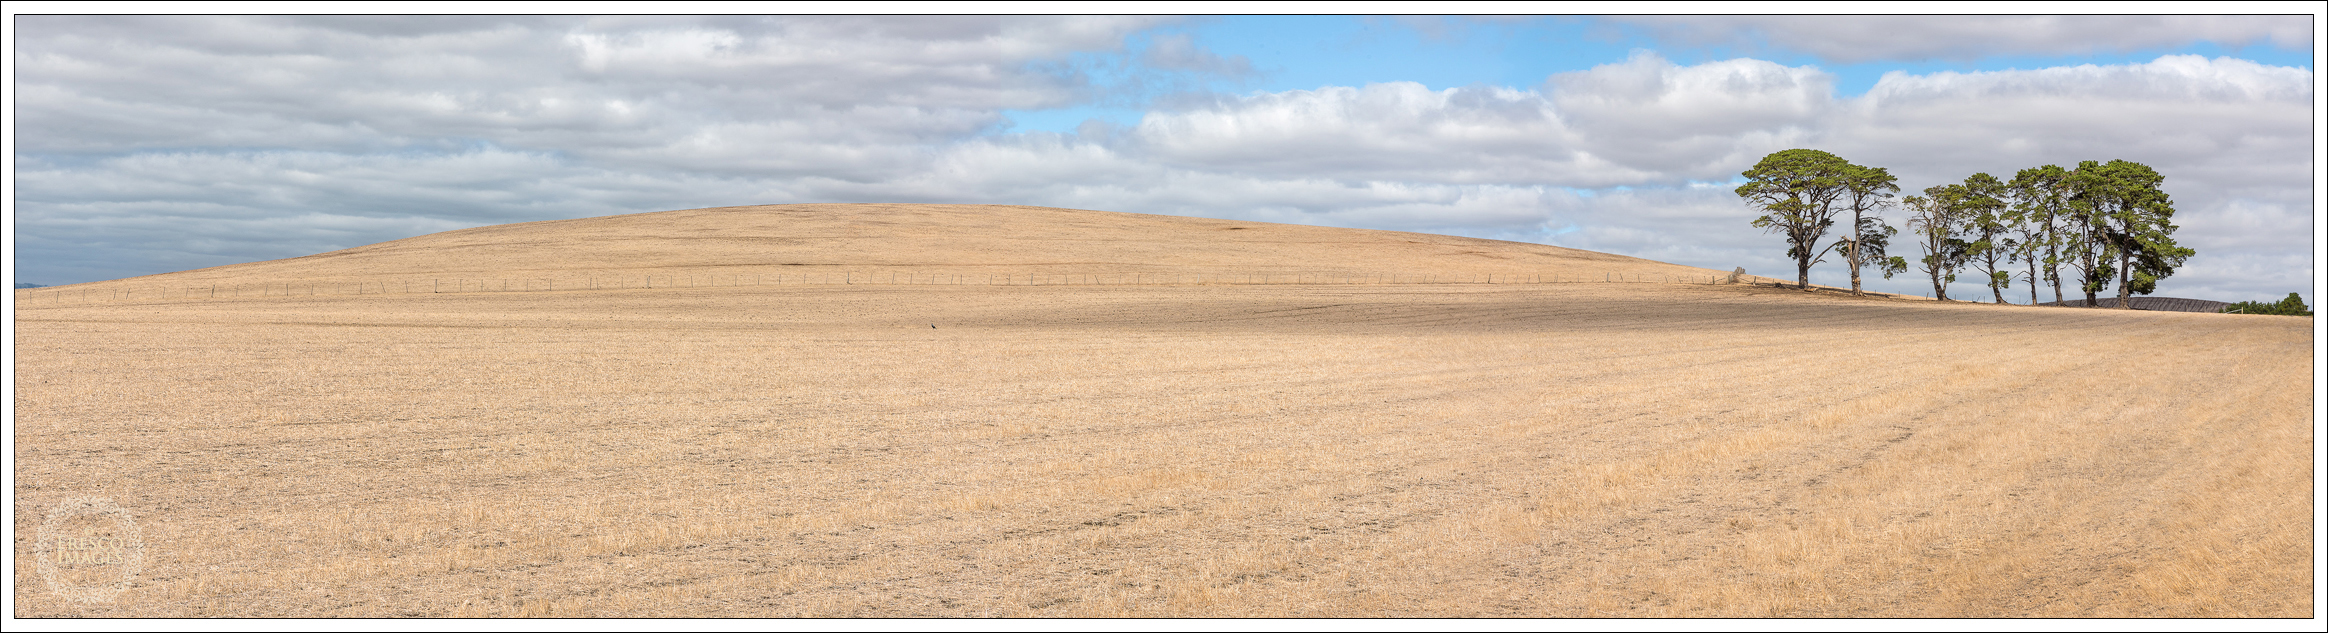 'Wide Open Spaces'